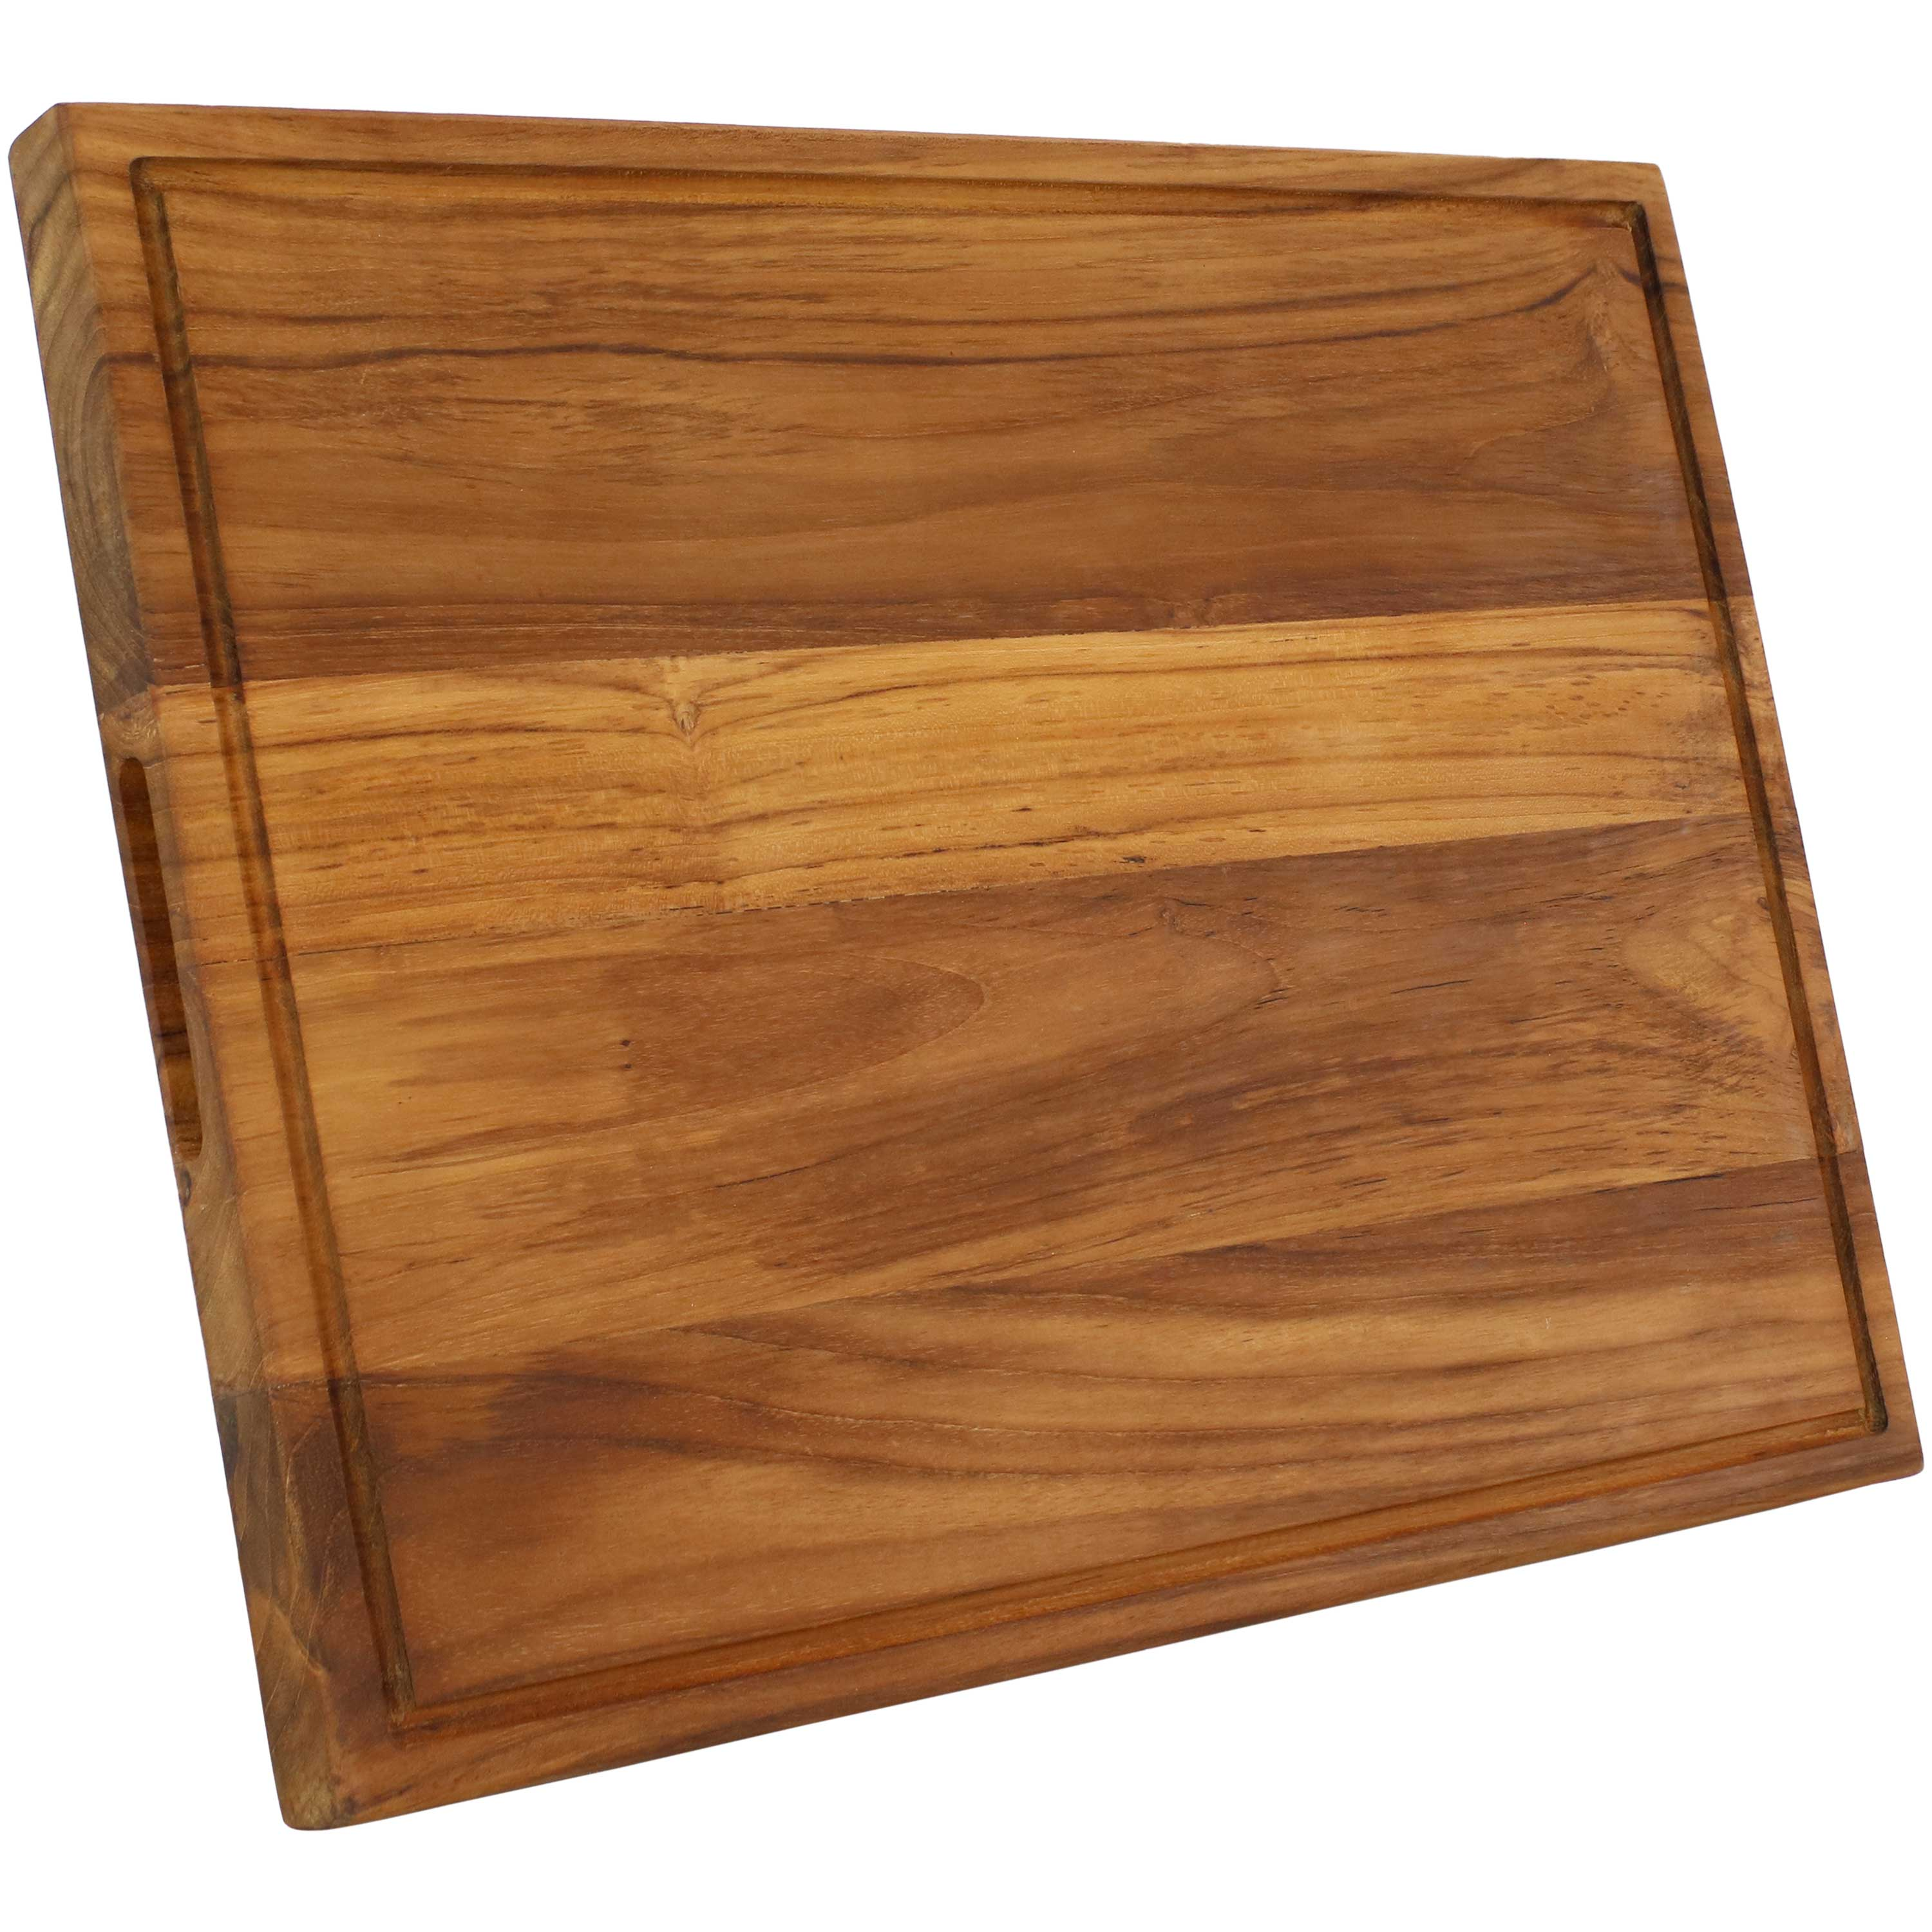 Sunnydaze Teak Wooden Cutting Board Cured With Beeswax Finish 20 Inch